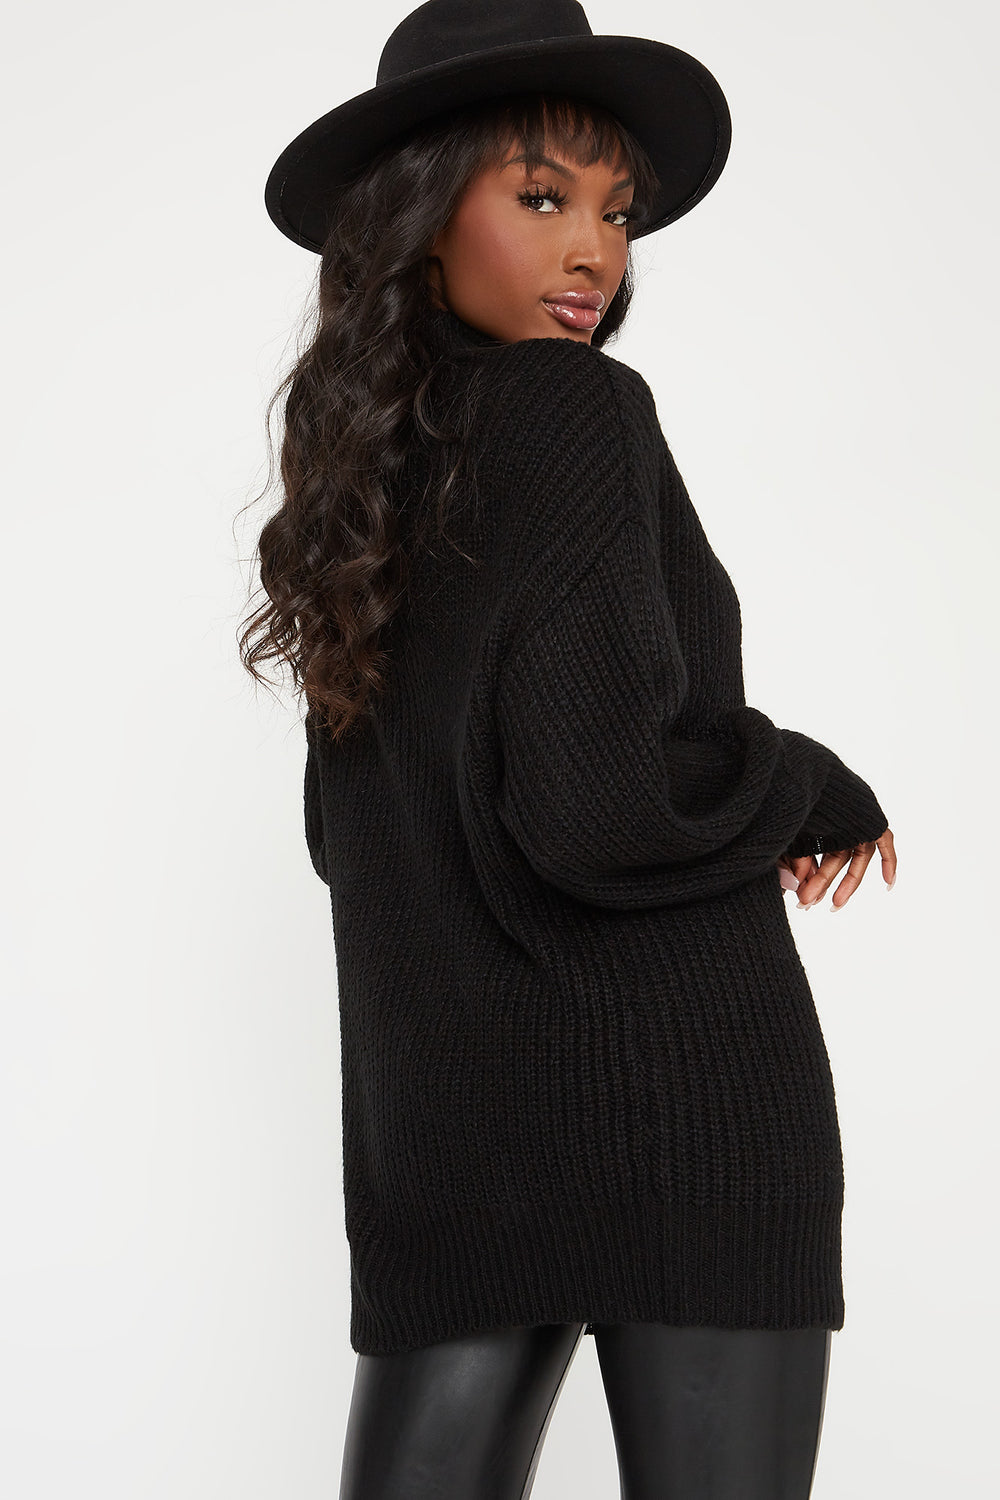 Knit Mock Neck Bubble Sleeve Sweater Black